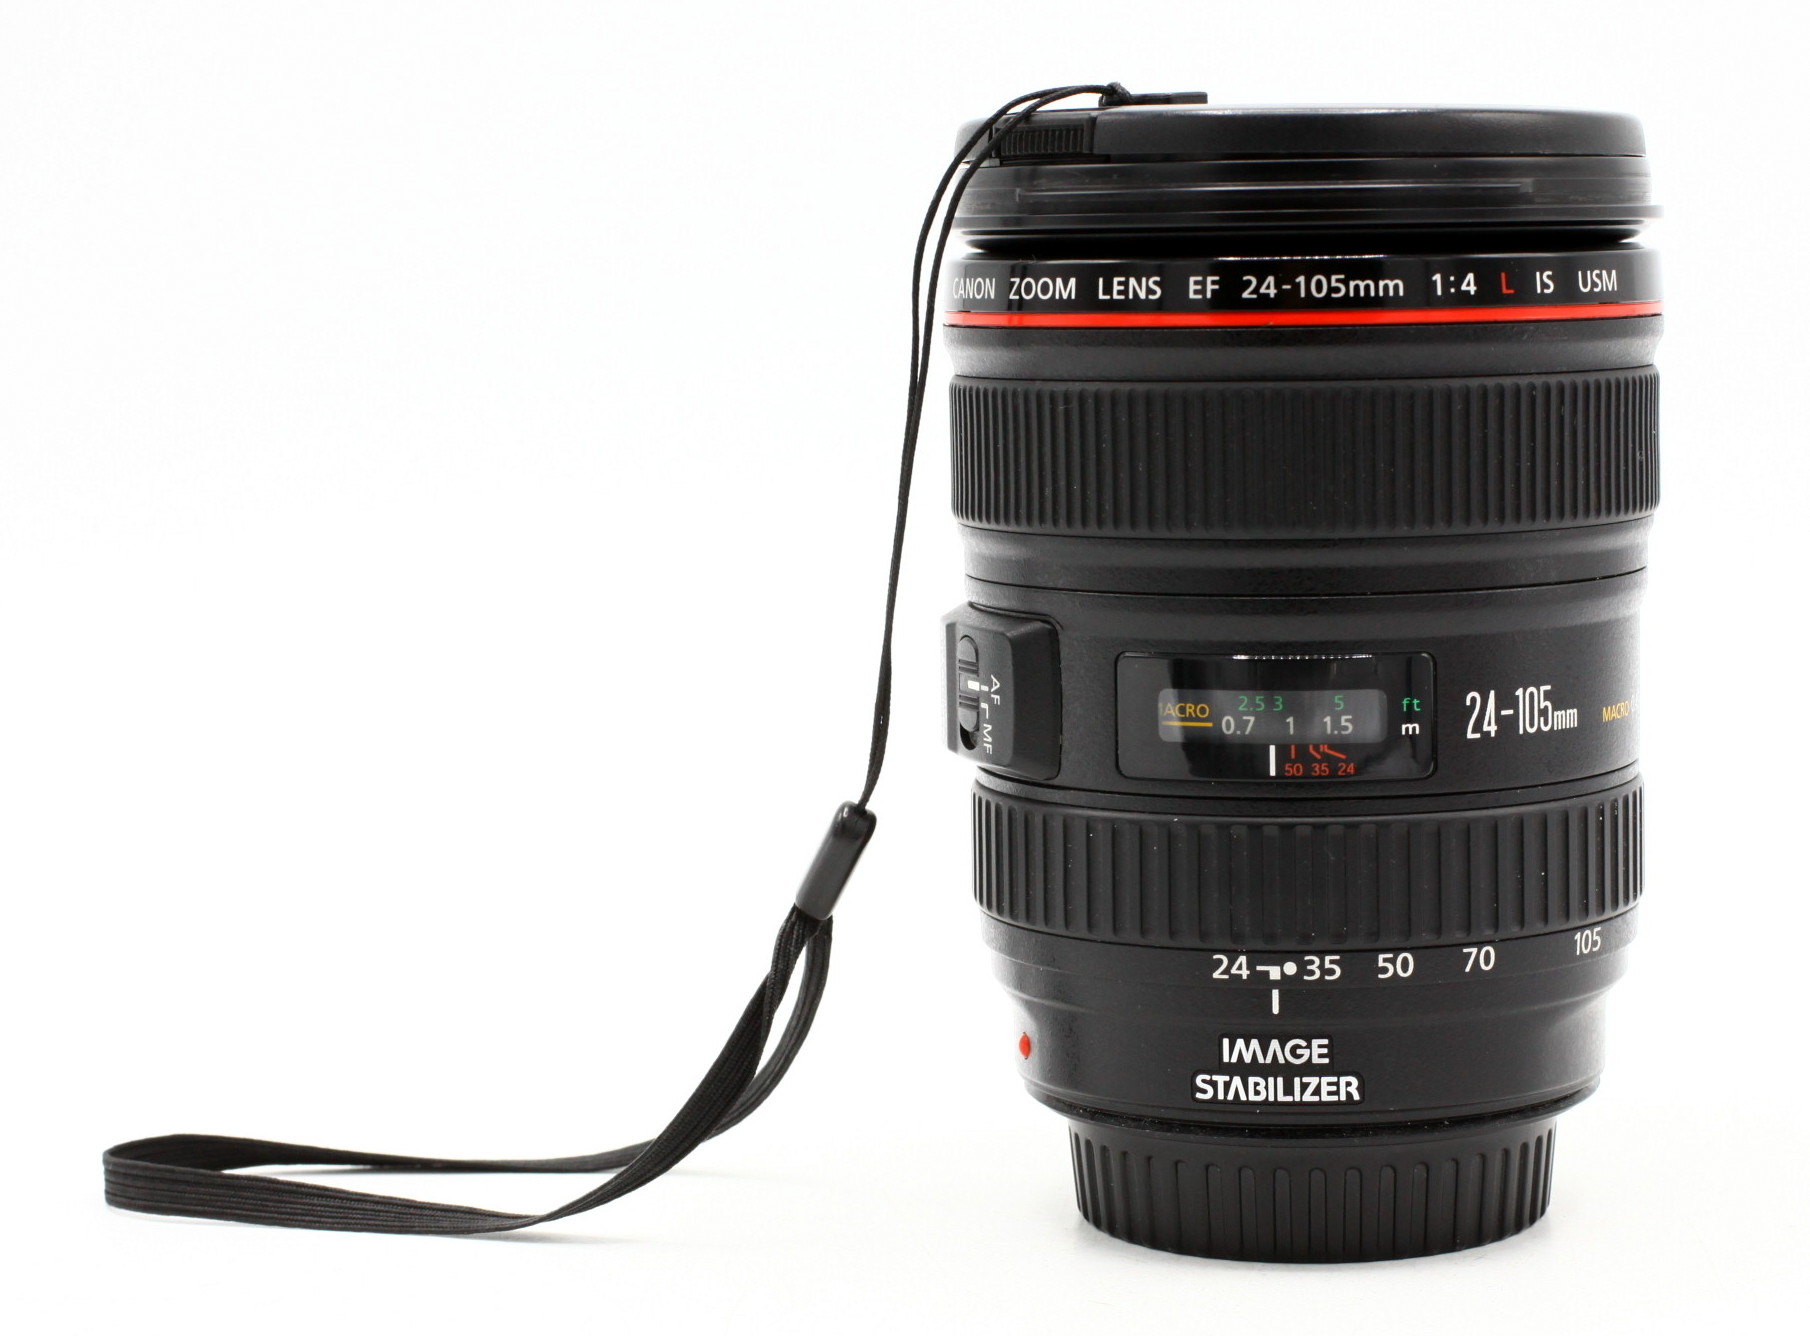 Canon EF 24-105mm F/4.0 L USM iS + lenscase occasion